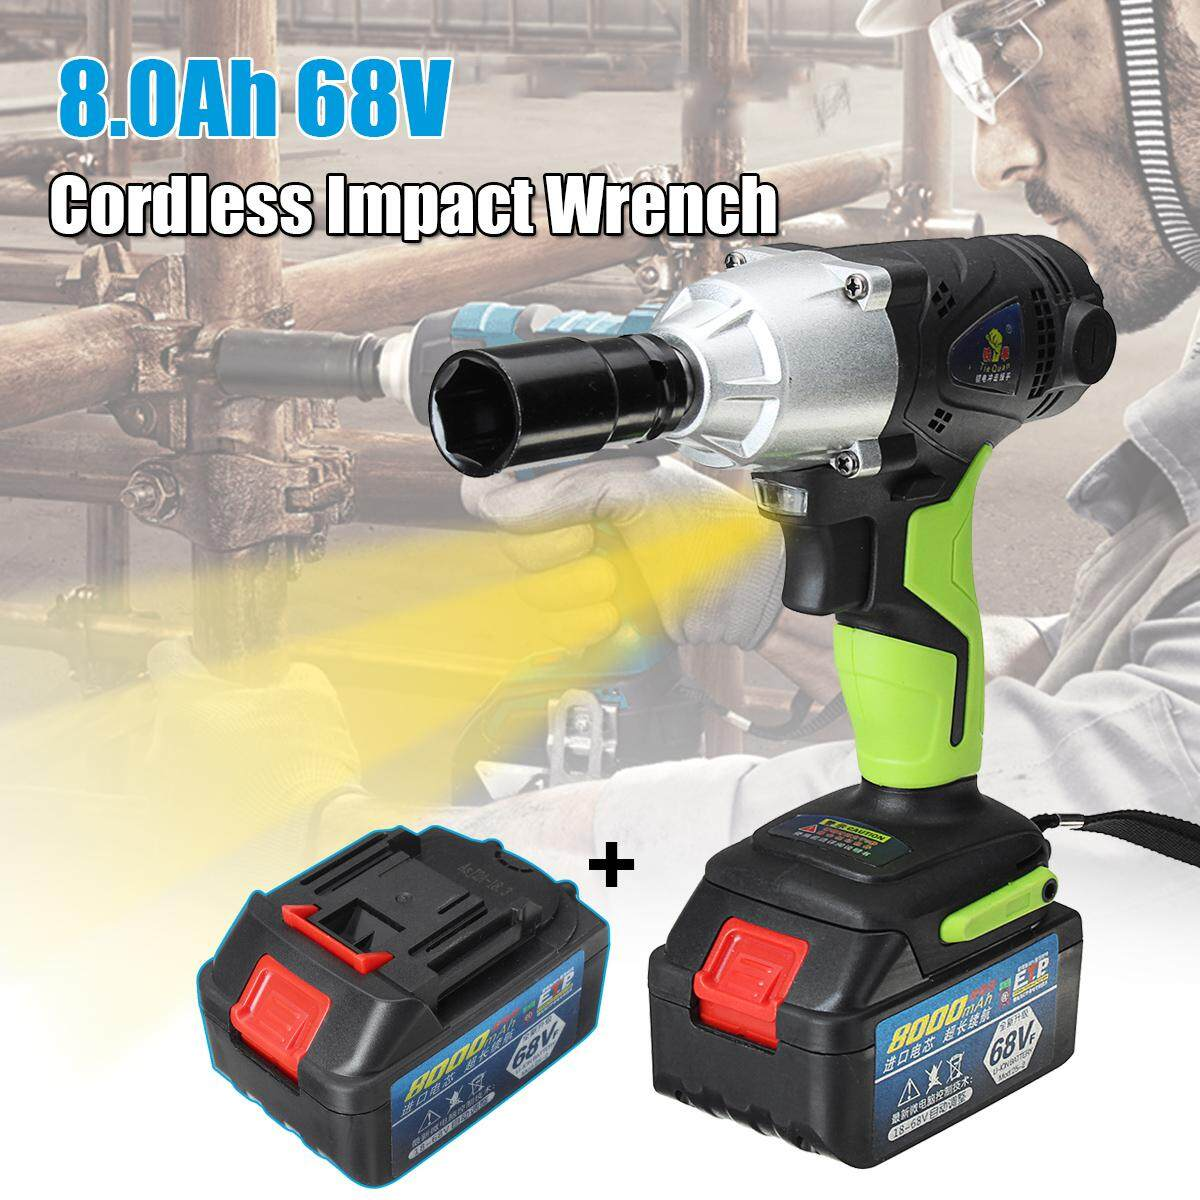 68V Cordless Impact Wrench 1/2 420Nm Metal Chuck with 8000mAh Li-ion Battery EU Plug